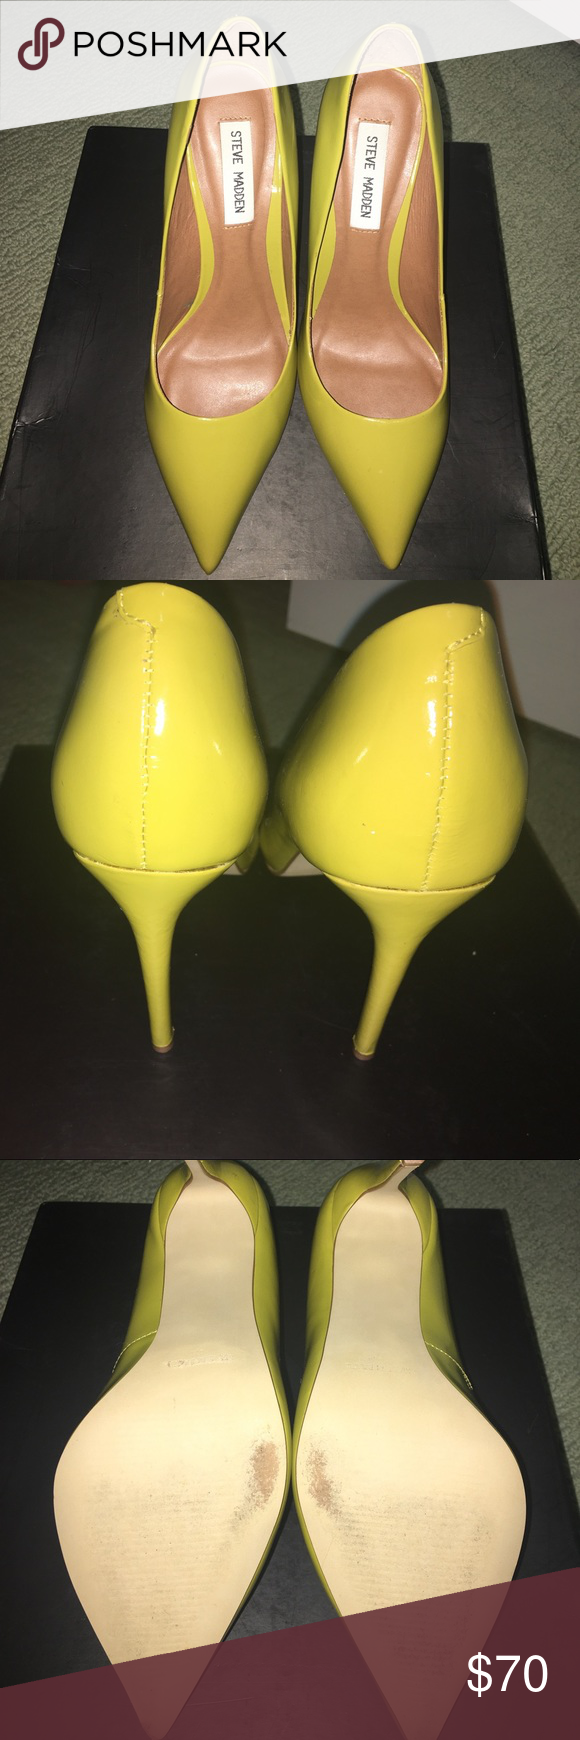 Steve Madden pointed toe PROTO Gently used Steve Madden yellow leather PROTO box included Steve Madden Shoes Heels